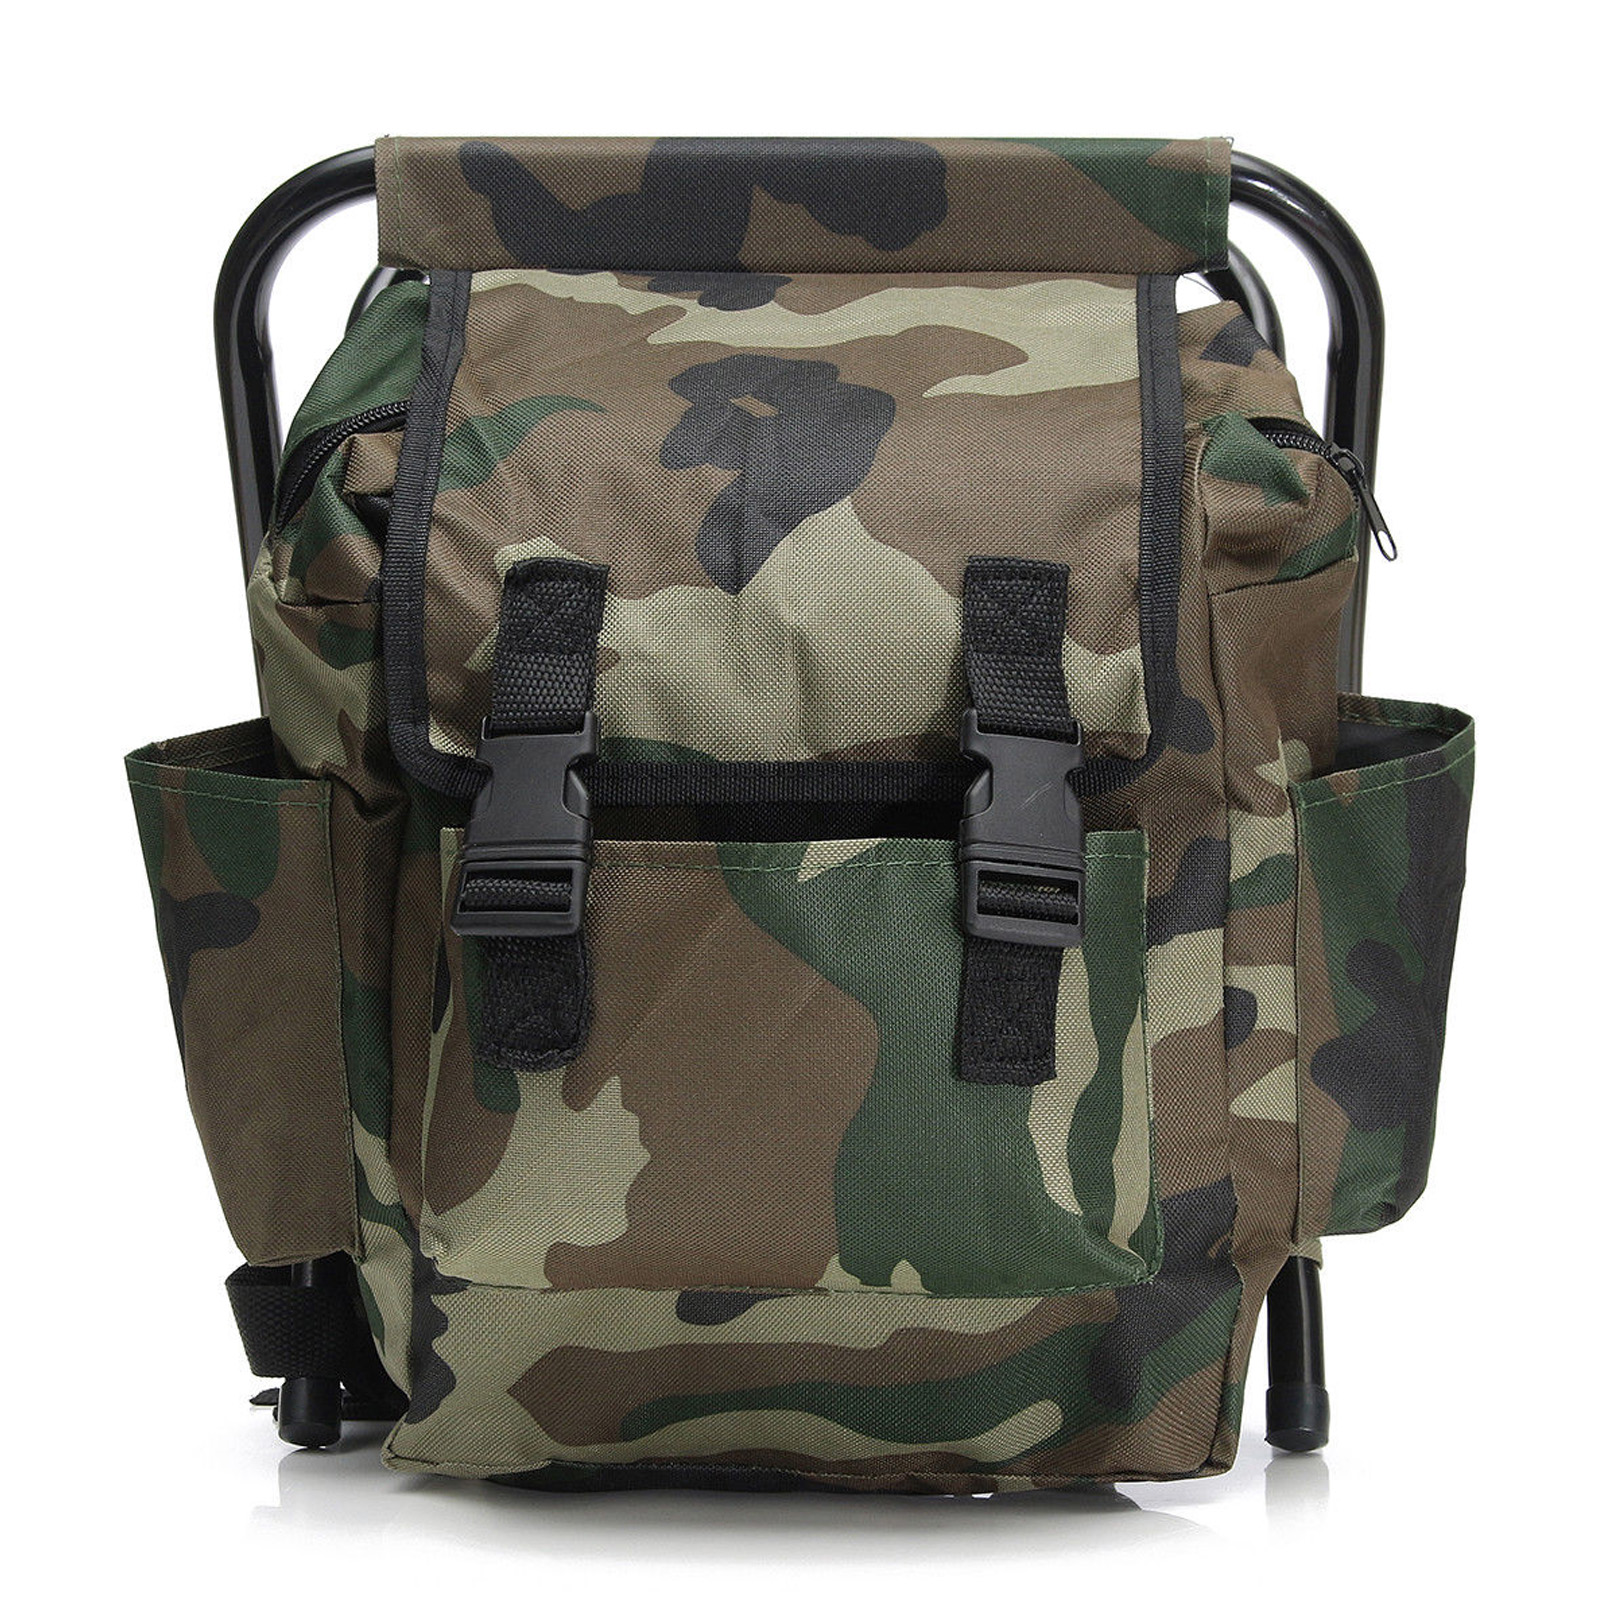 Foldable outdoor fishing chair stool backpack travel for Fishing backpack chair